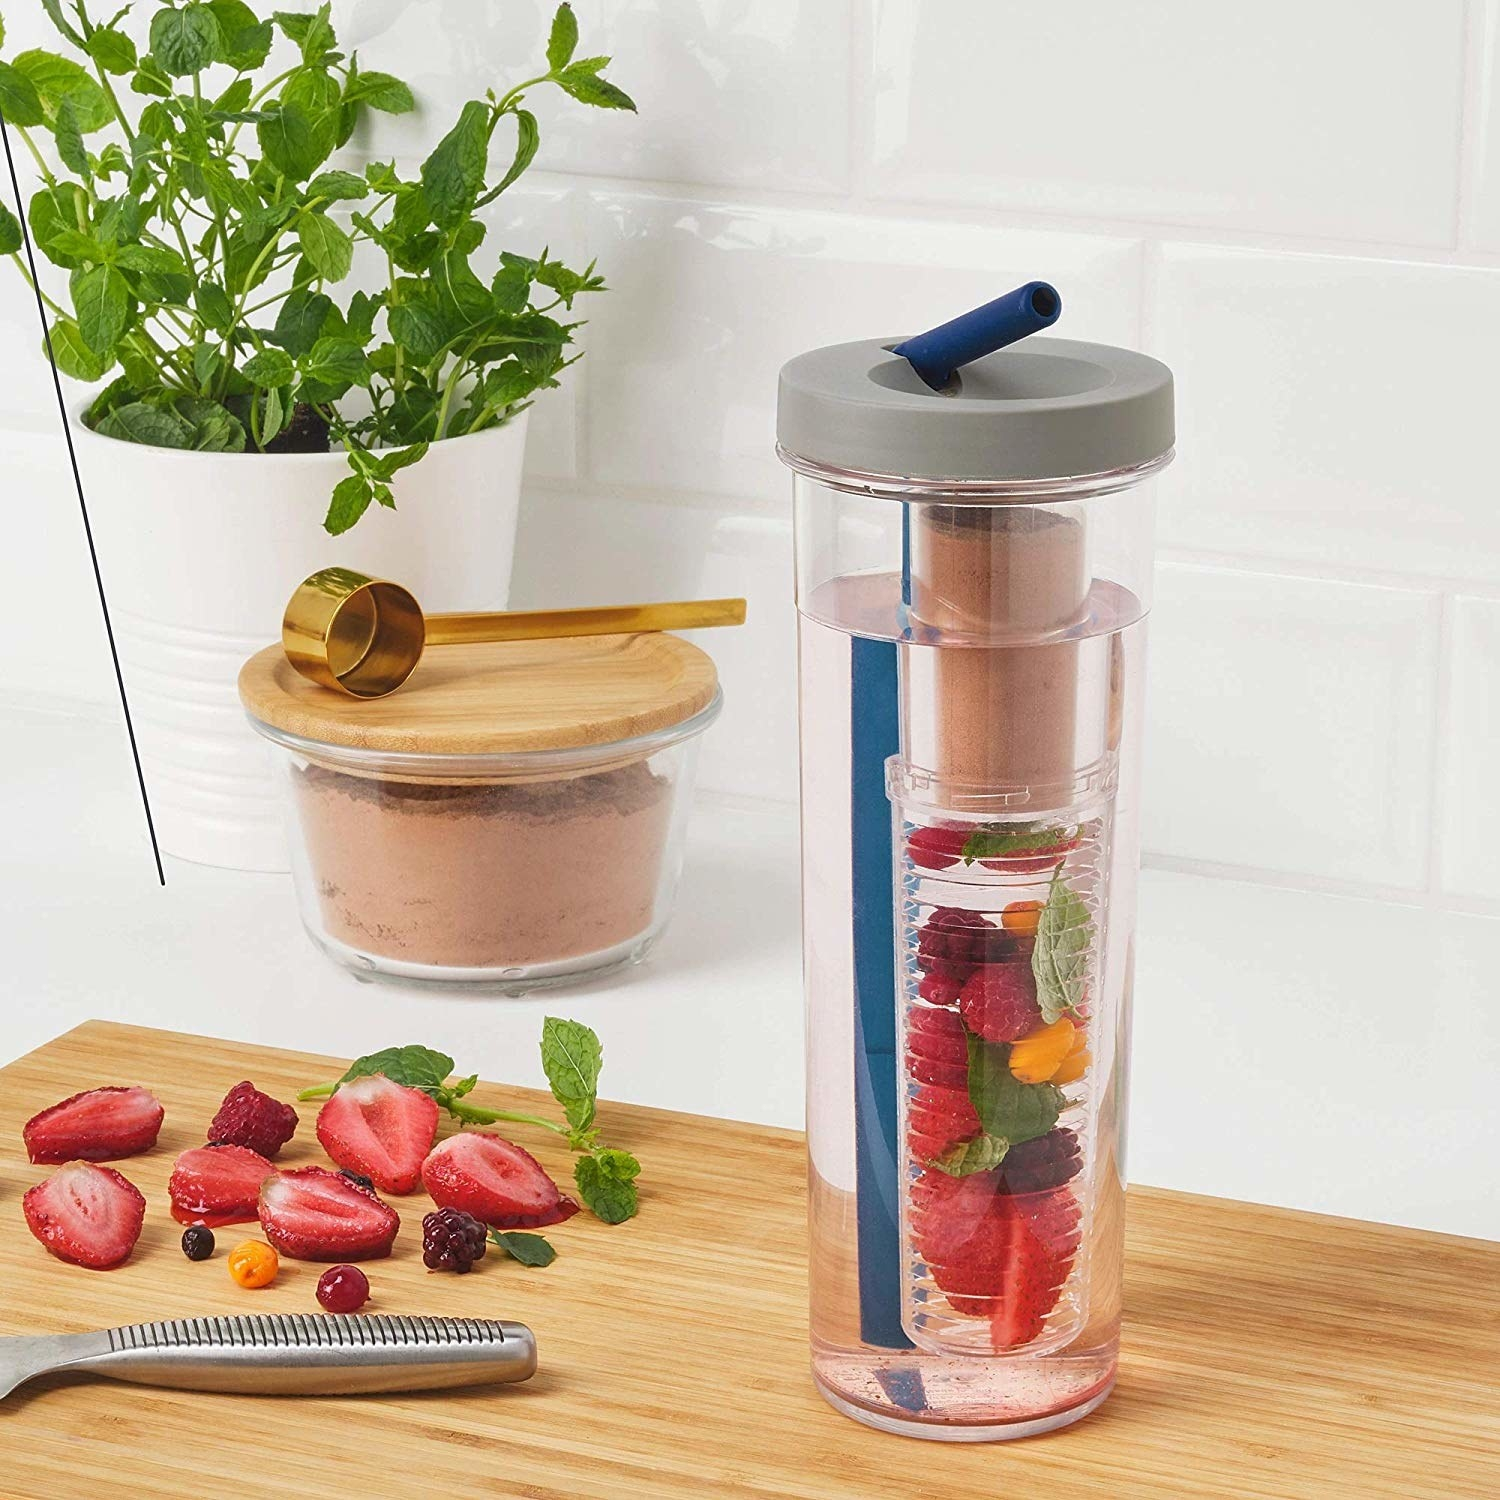 The infuser bottle pictured with fruits and water in it.